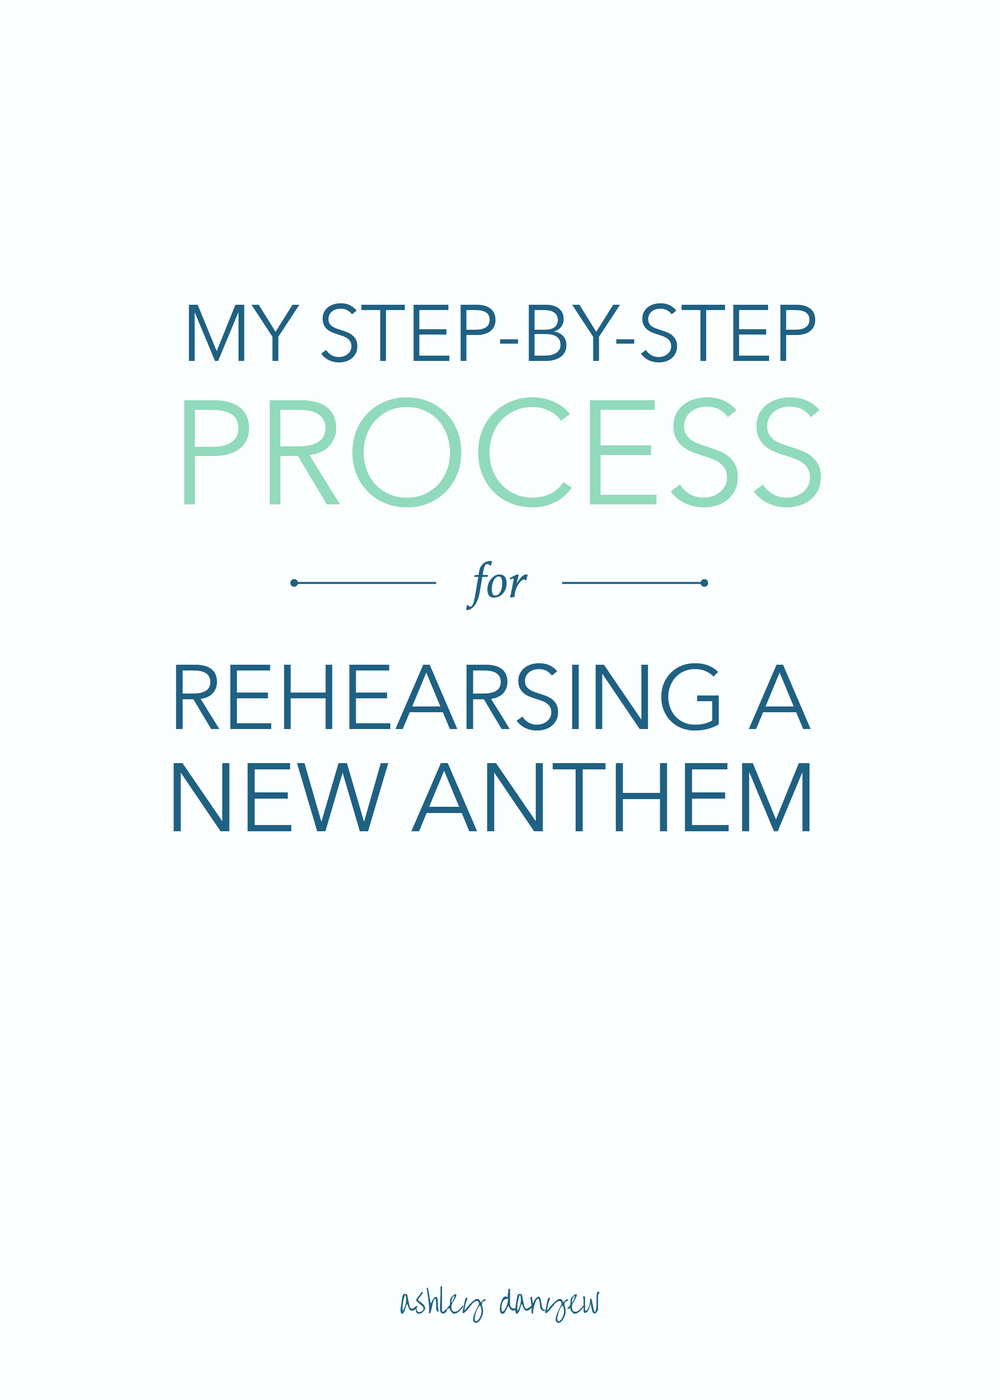 My-Step-By-Step-Process-for-Rehearsing-a-New-Anthem-01.png